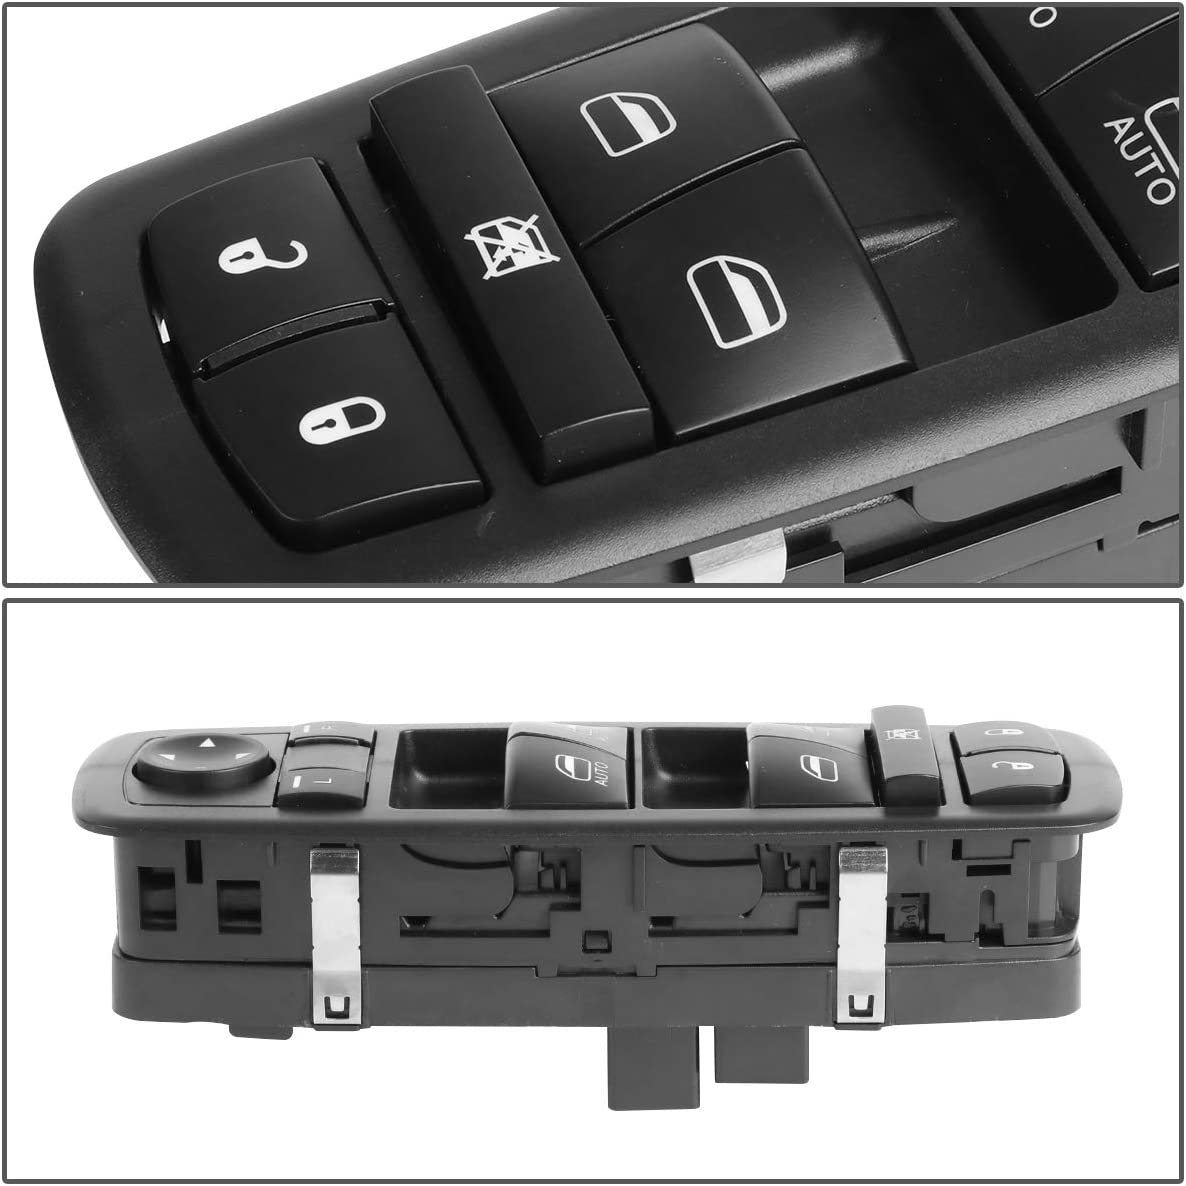 Black DNA MOTORING WSW-037 Factory Style Driver Side Master Power Window Lifter Switch For 2005-2017 VOLKSWAGEN WSW-040 WSW-040 WSW-040 WSW-040